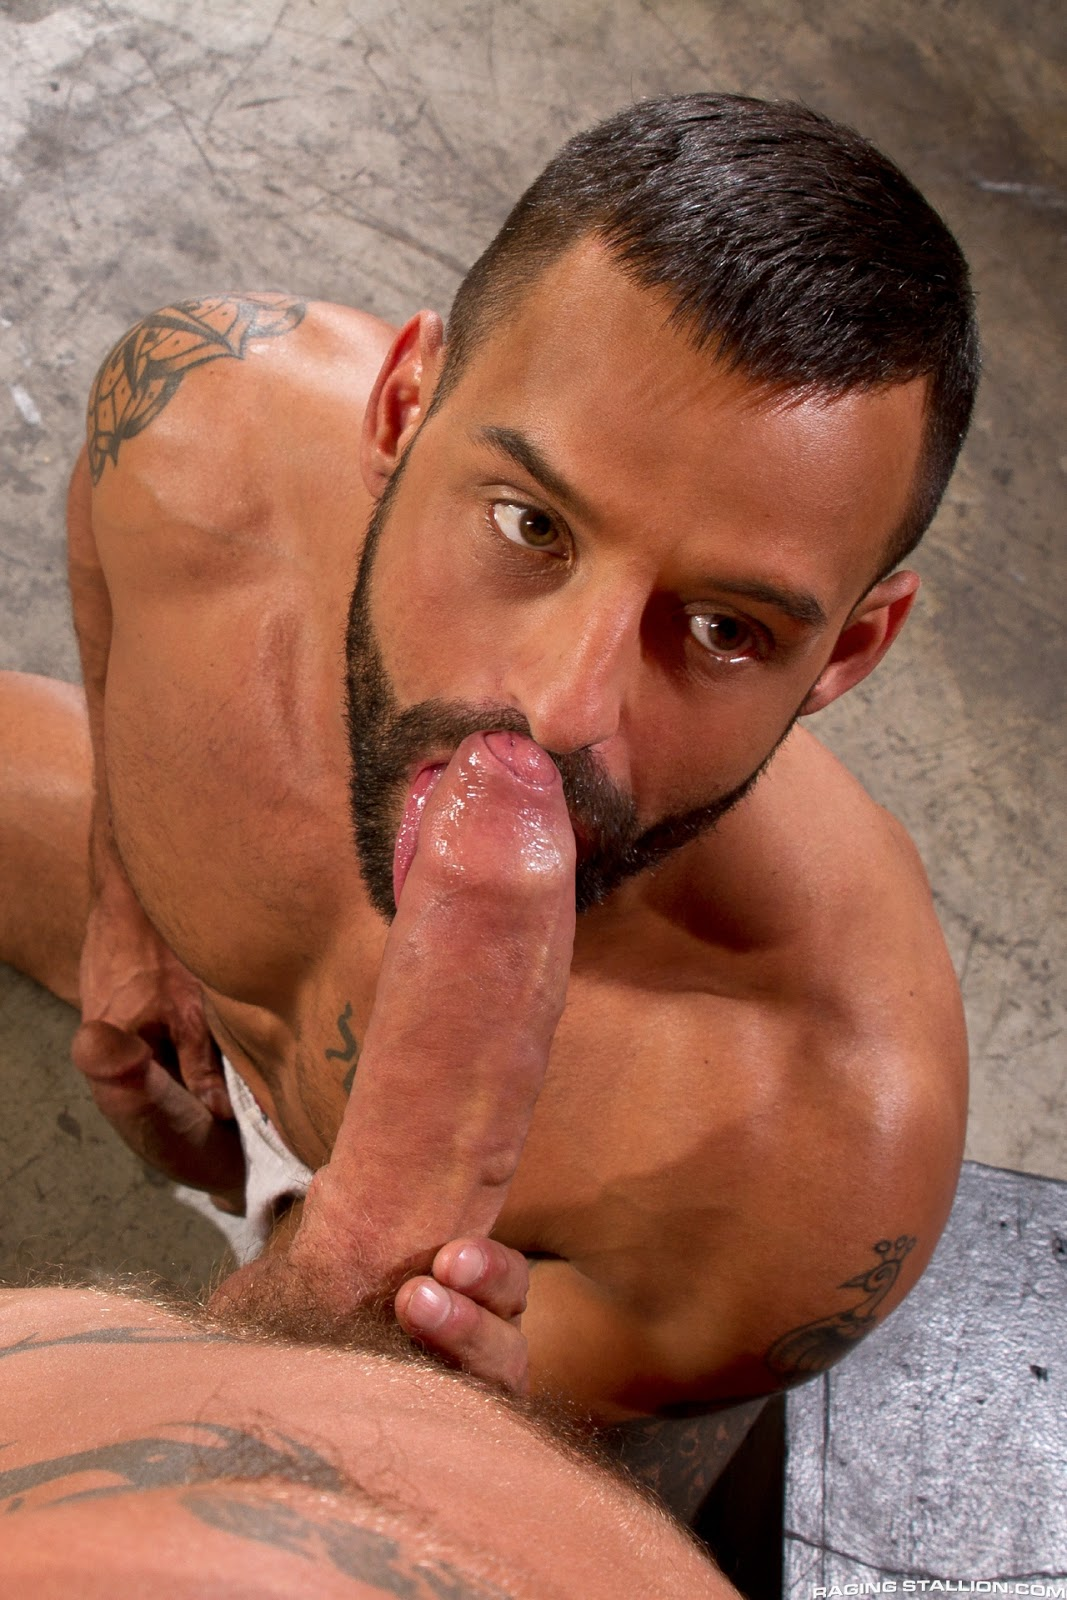 Latino Gay Amateur Striptease And Cumming